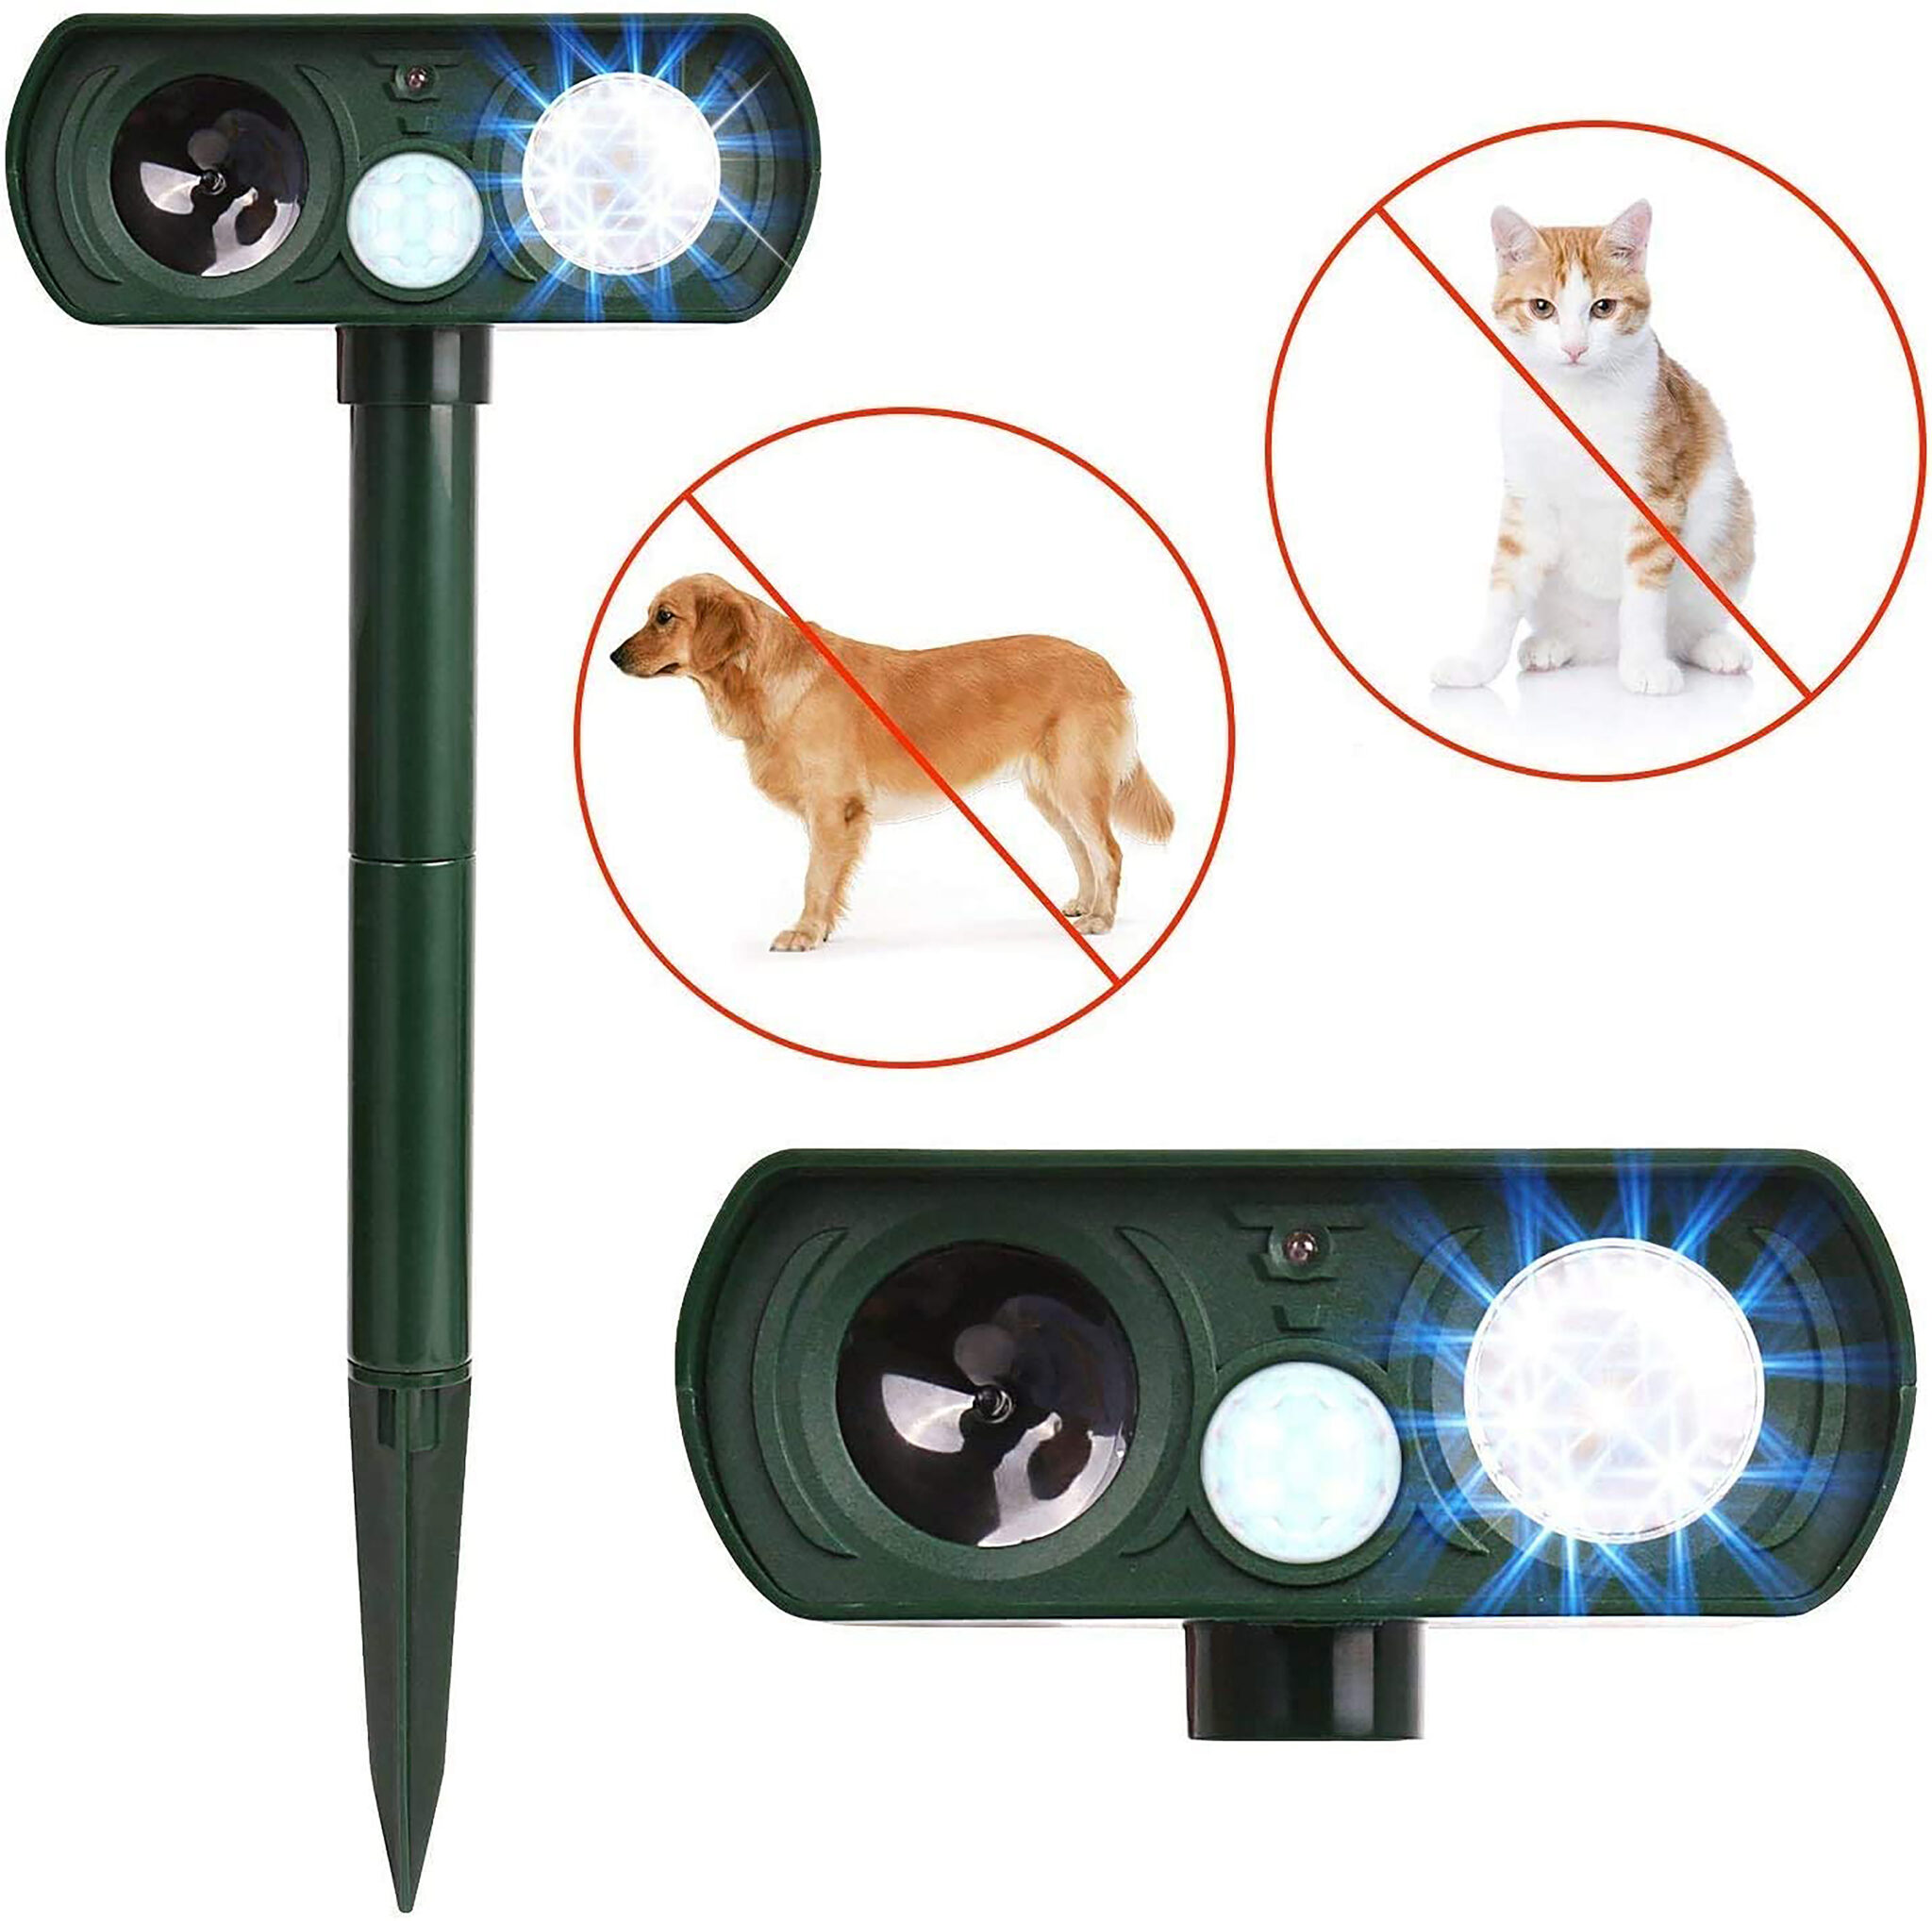 Humutan Ultrasonic Dog Repellent